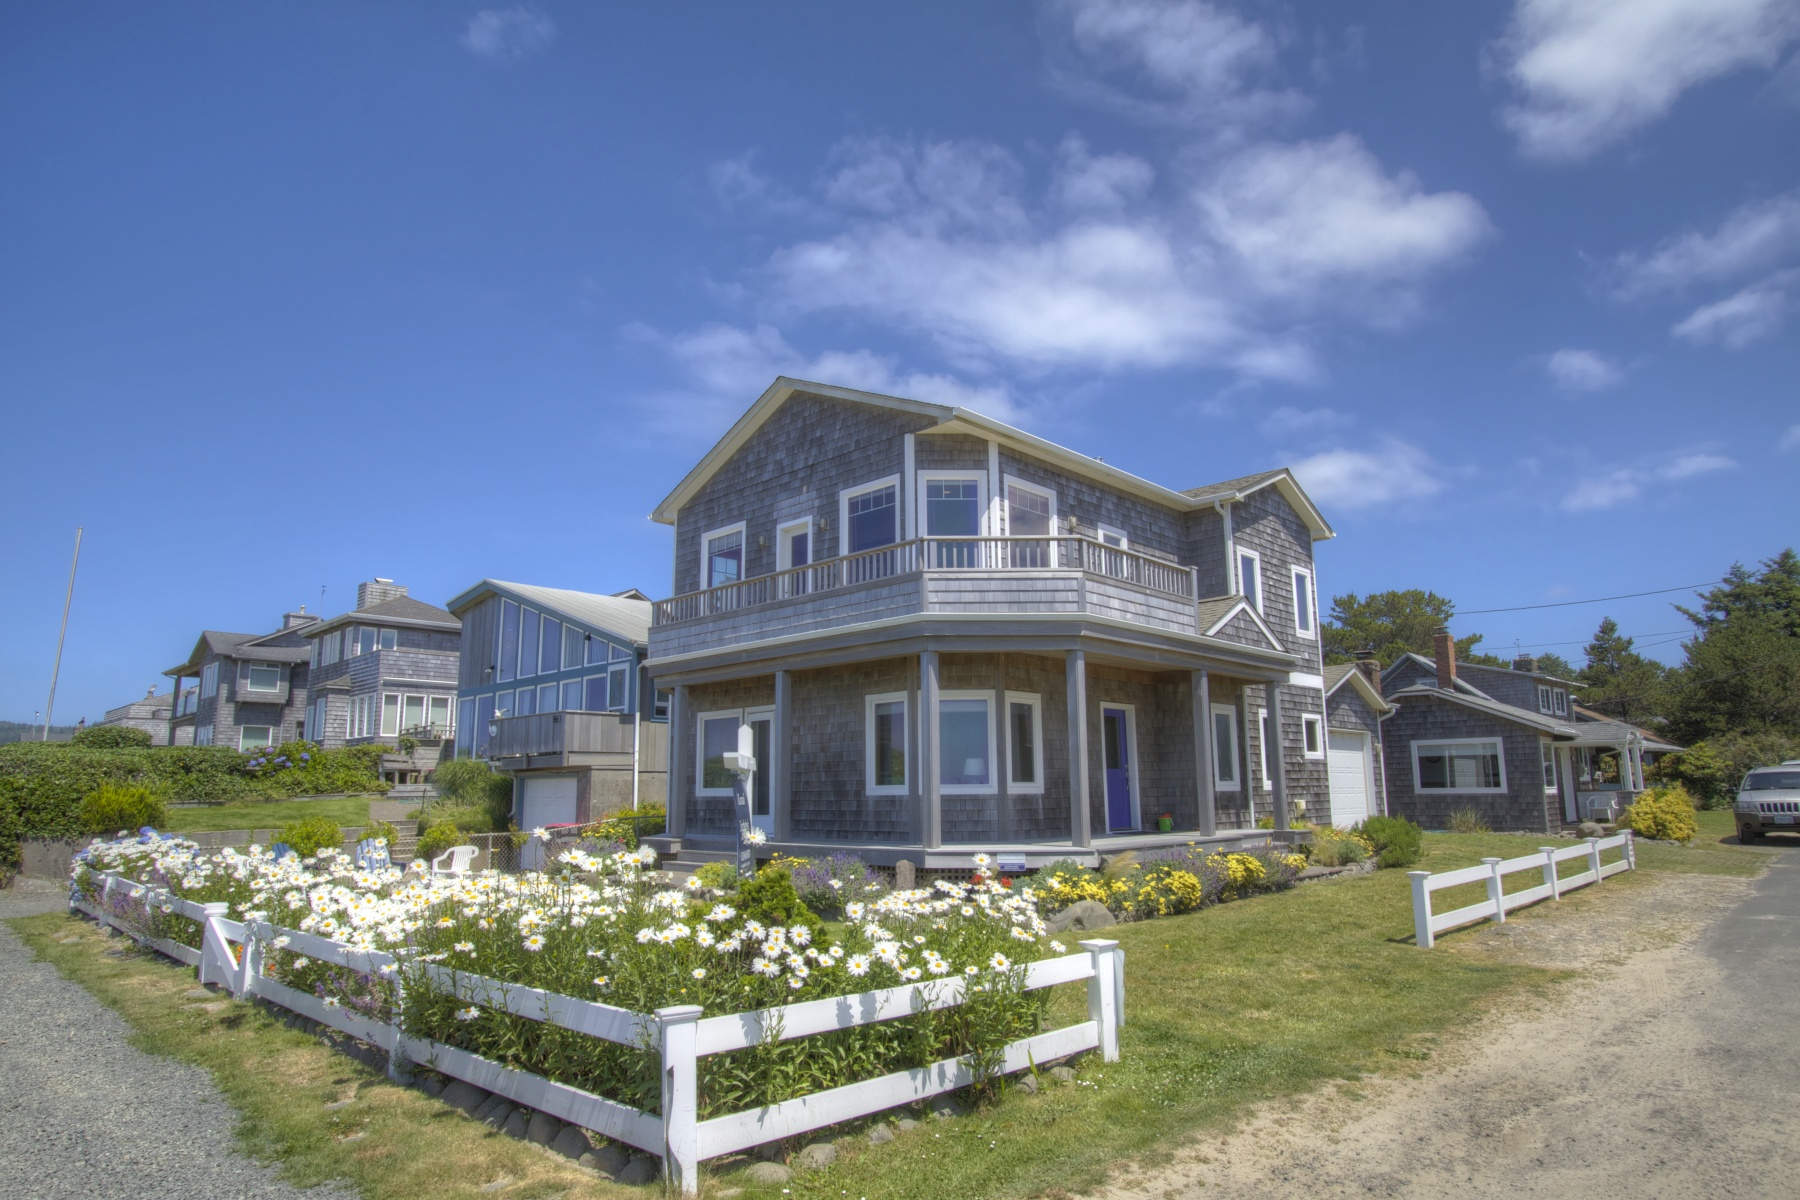 Single Family Home for Sale at Oceanfront Cannon Beach Home 188 Van Buren St Cannon Beach, Oregon 97110 United States